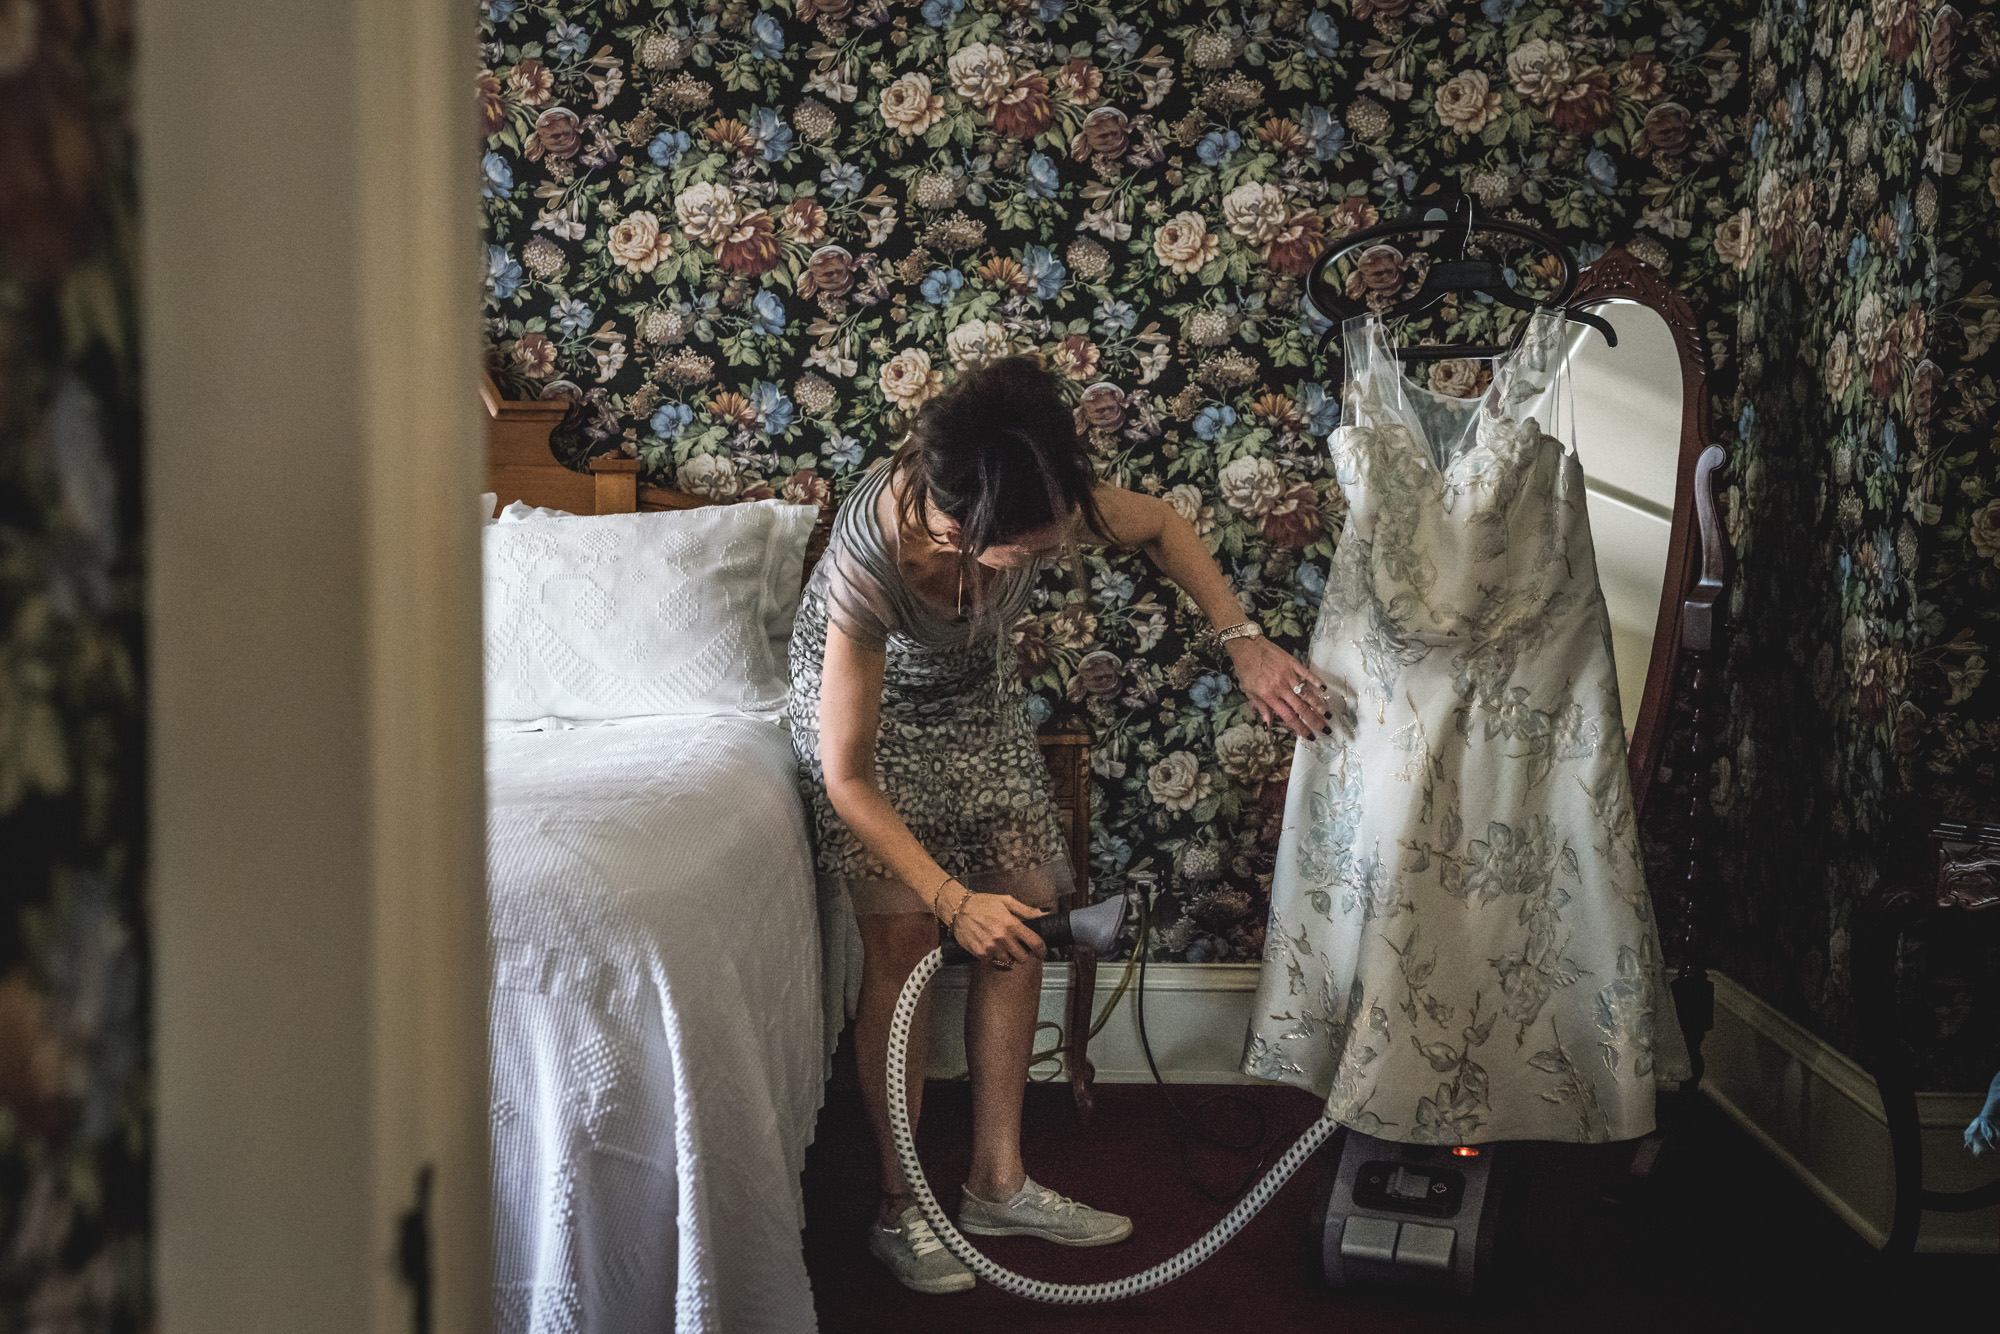 Color image of a woman in a dress and sneakers steaming a flowery dress in a flowery, ornate hotel room.